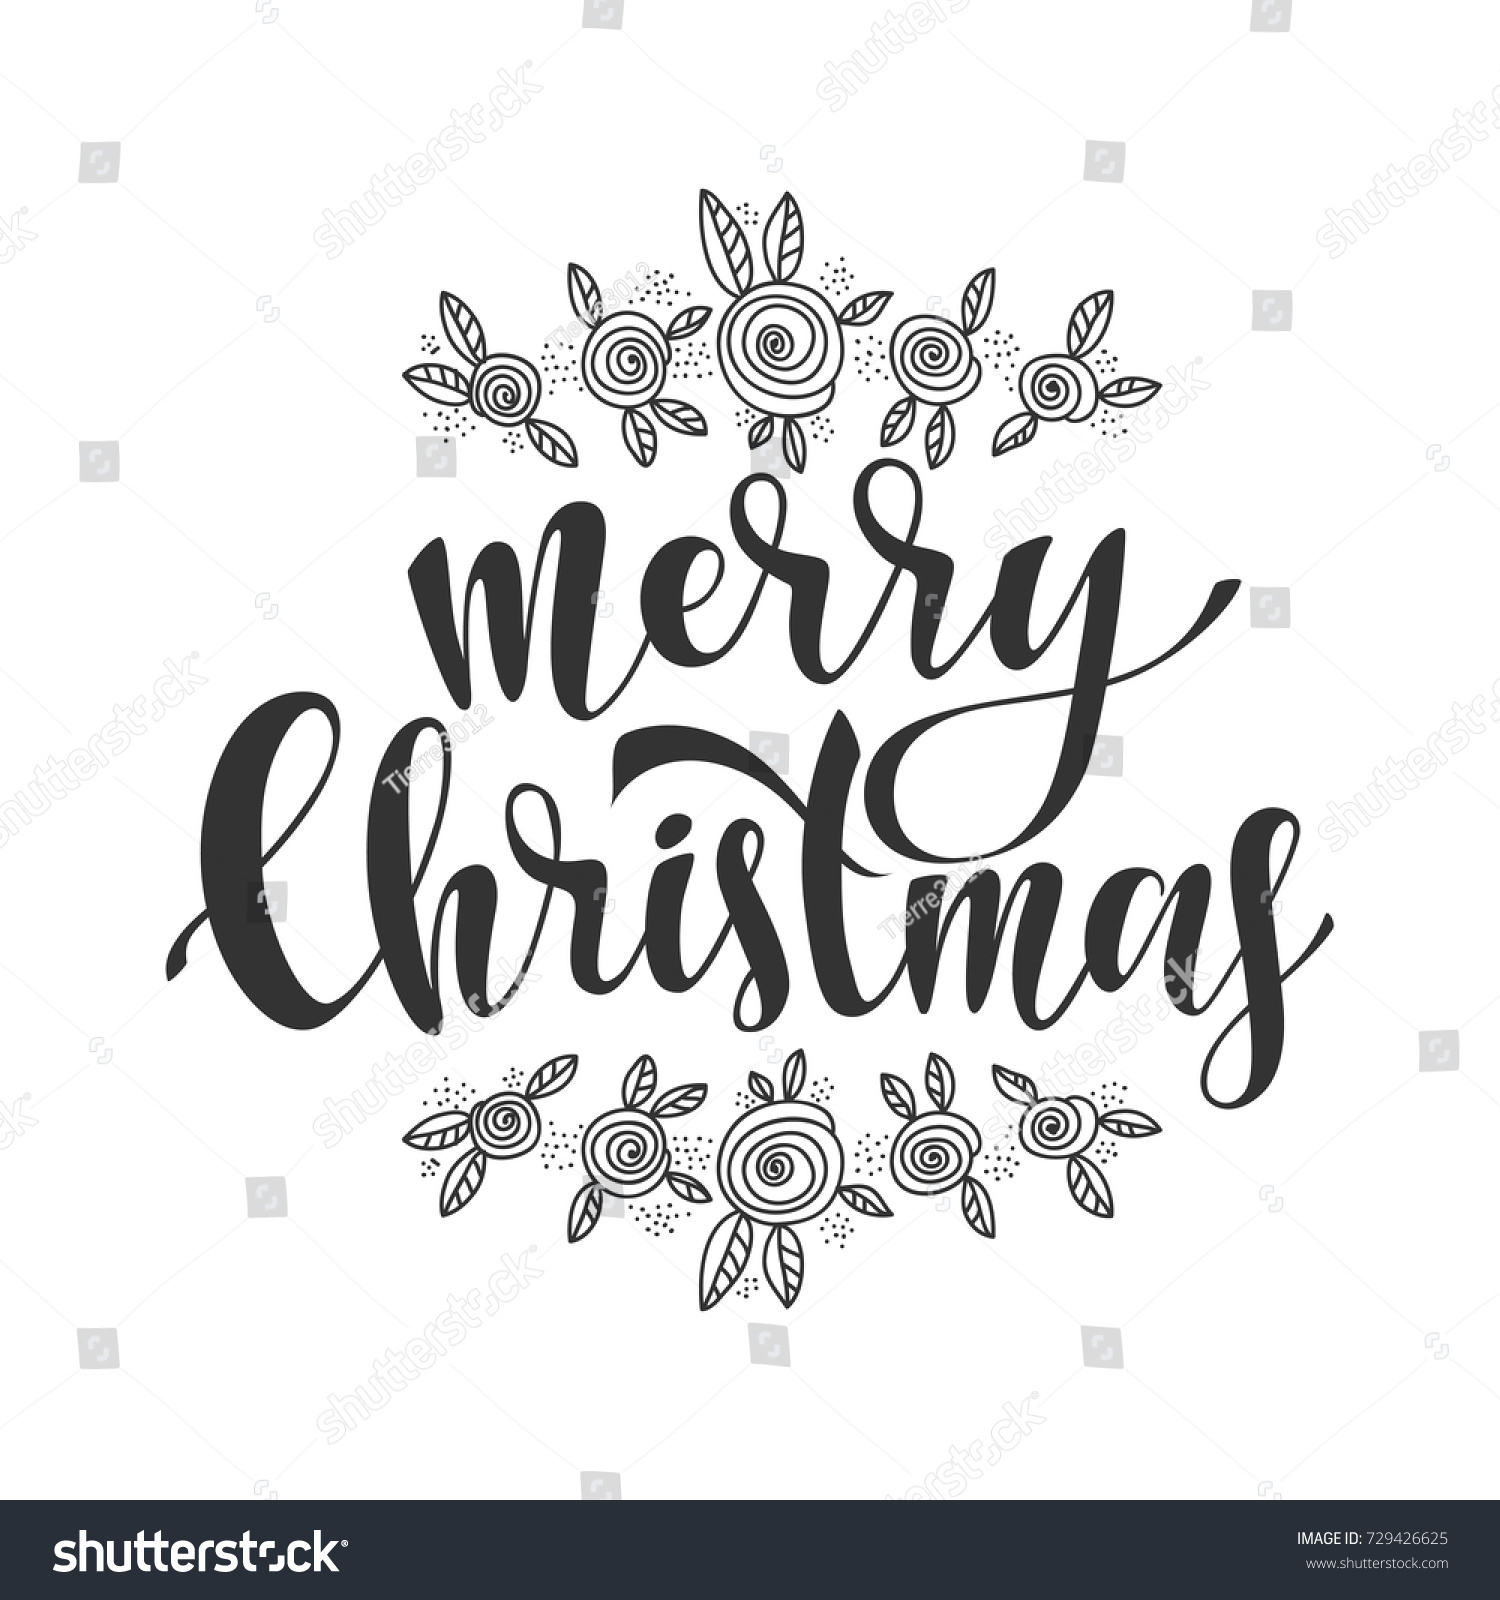 Merry Christmas Vector Text Calligraphic Lettering Design Card Template. Creative Typography For Holiday Greeting Gift